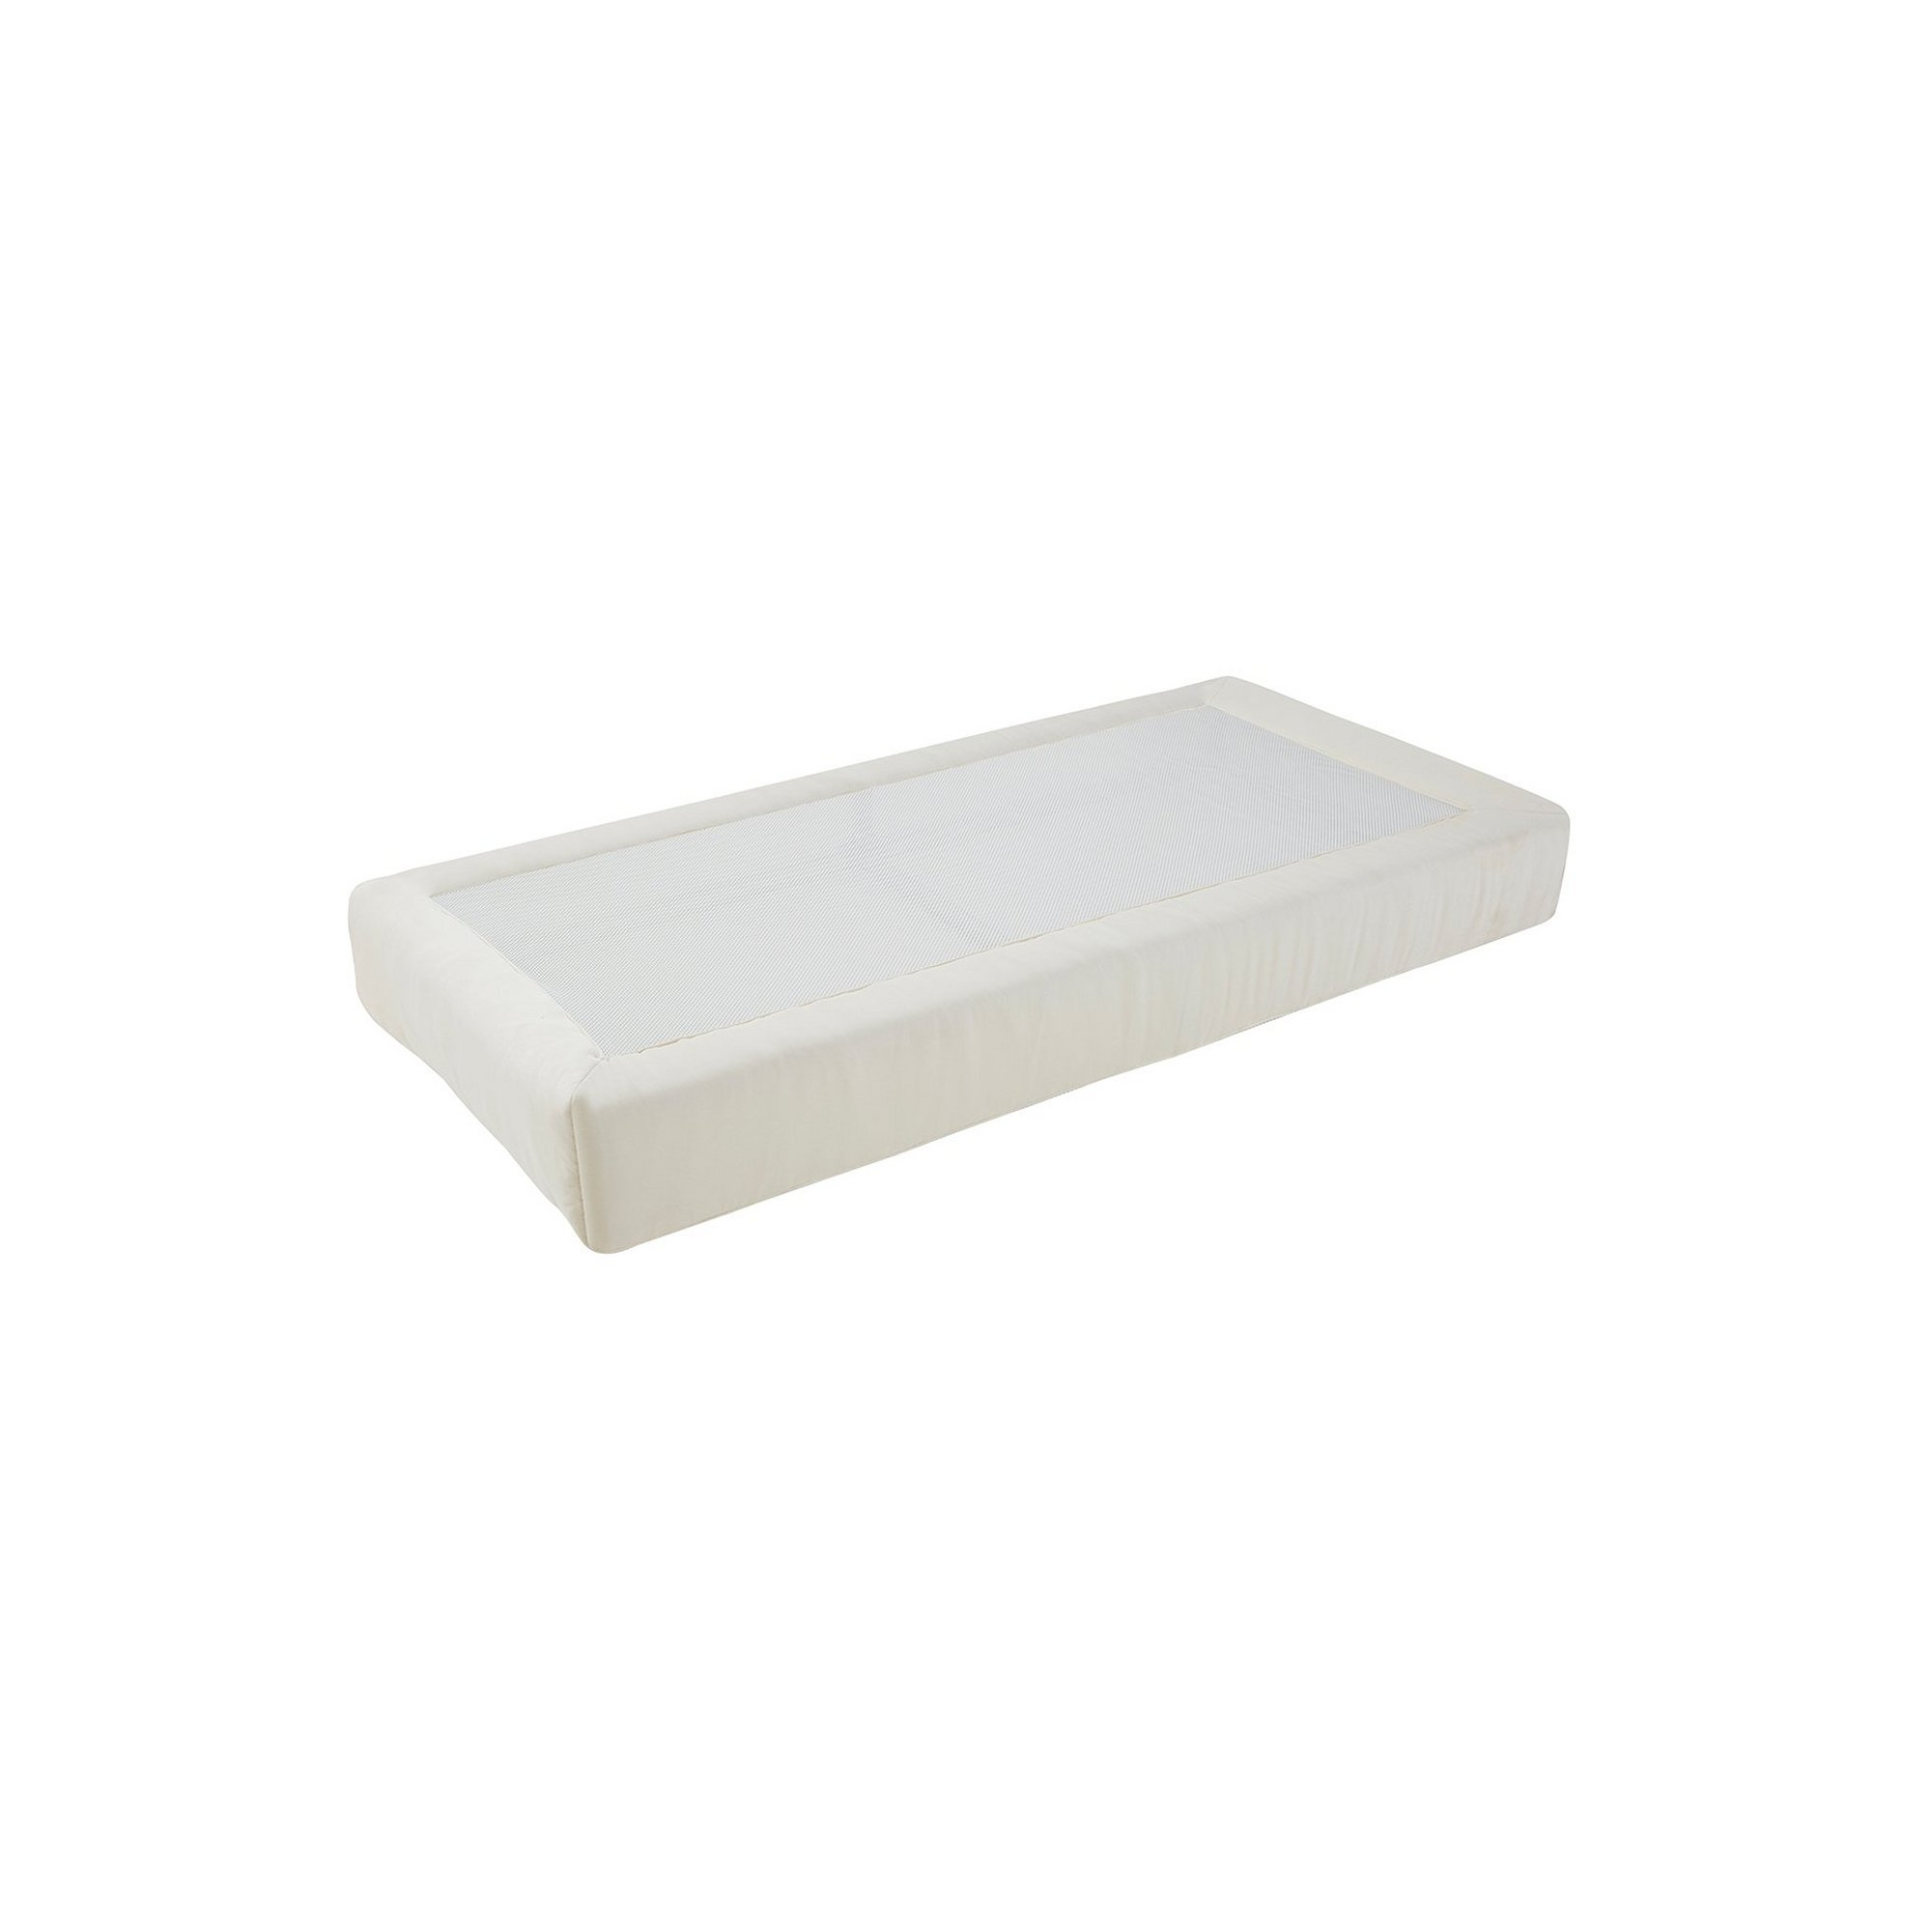 Image of Breathable Cot Mattress - 120 x 60